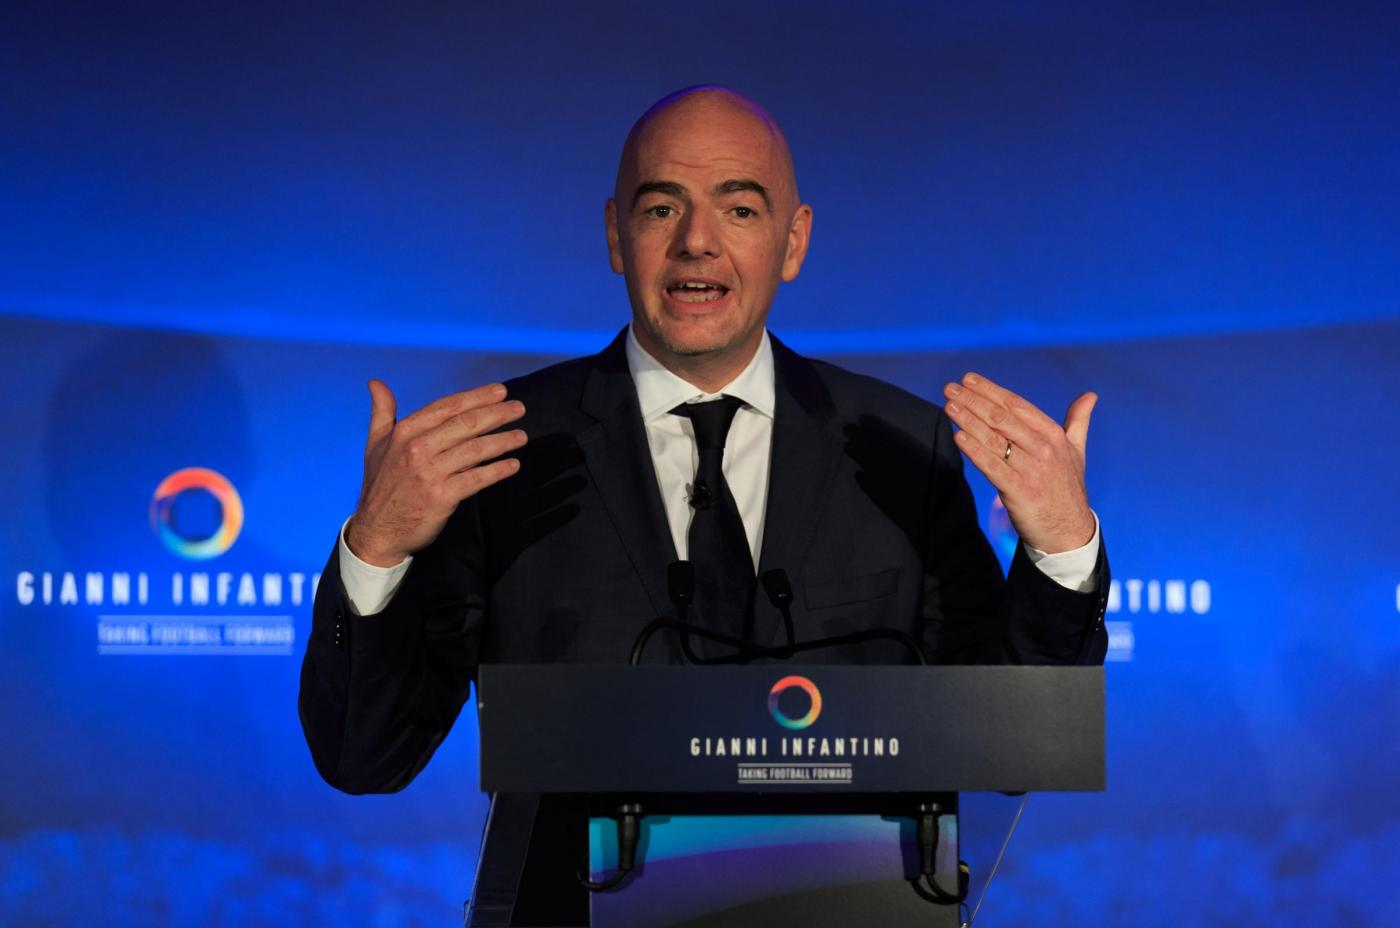 FIFA, Gianni Infantino in conferenza stampa al Wembley Stadium di Londra